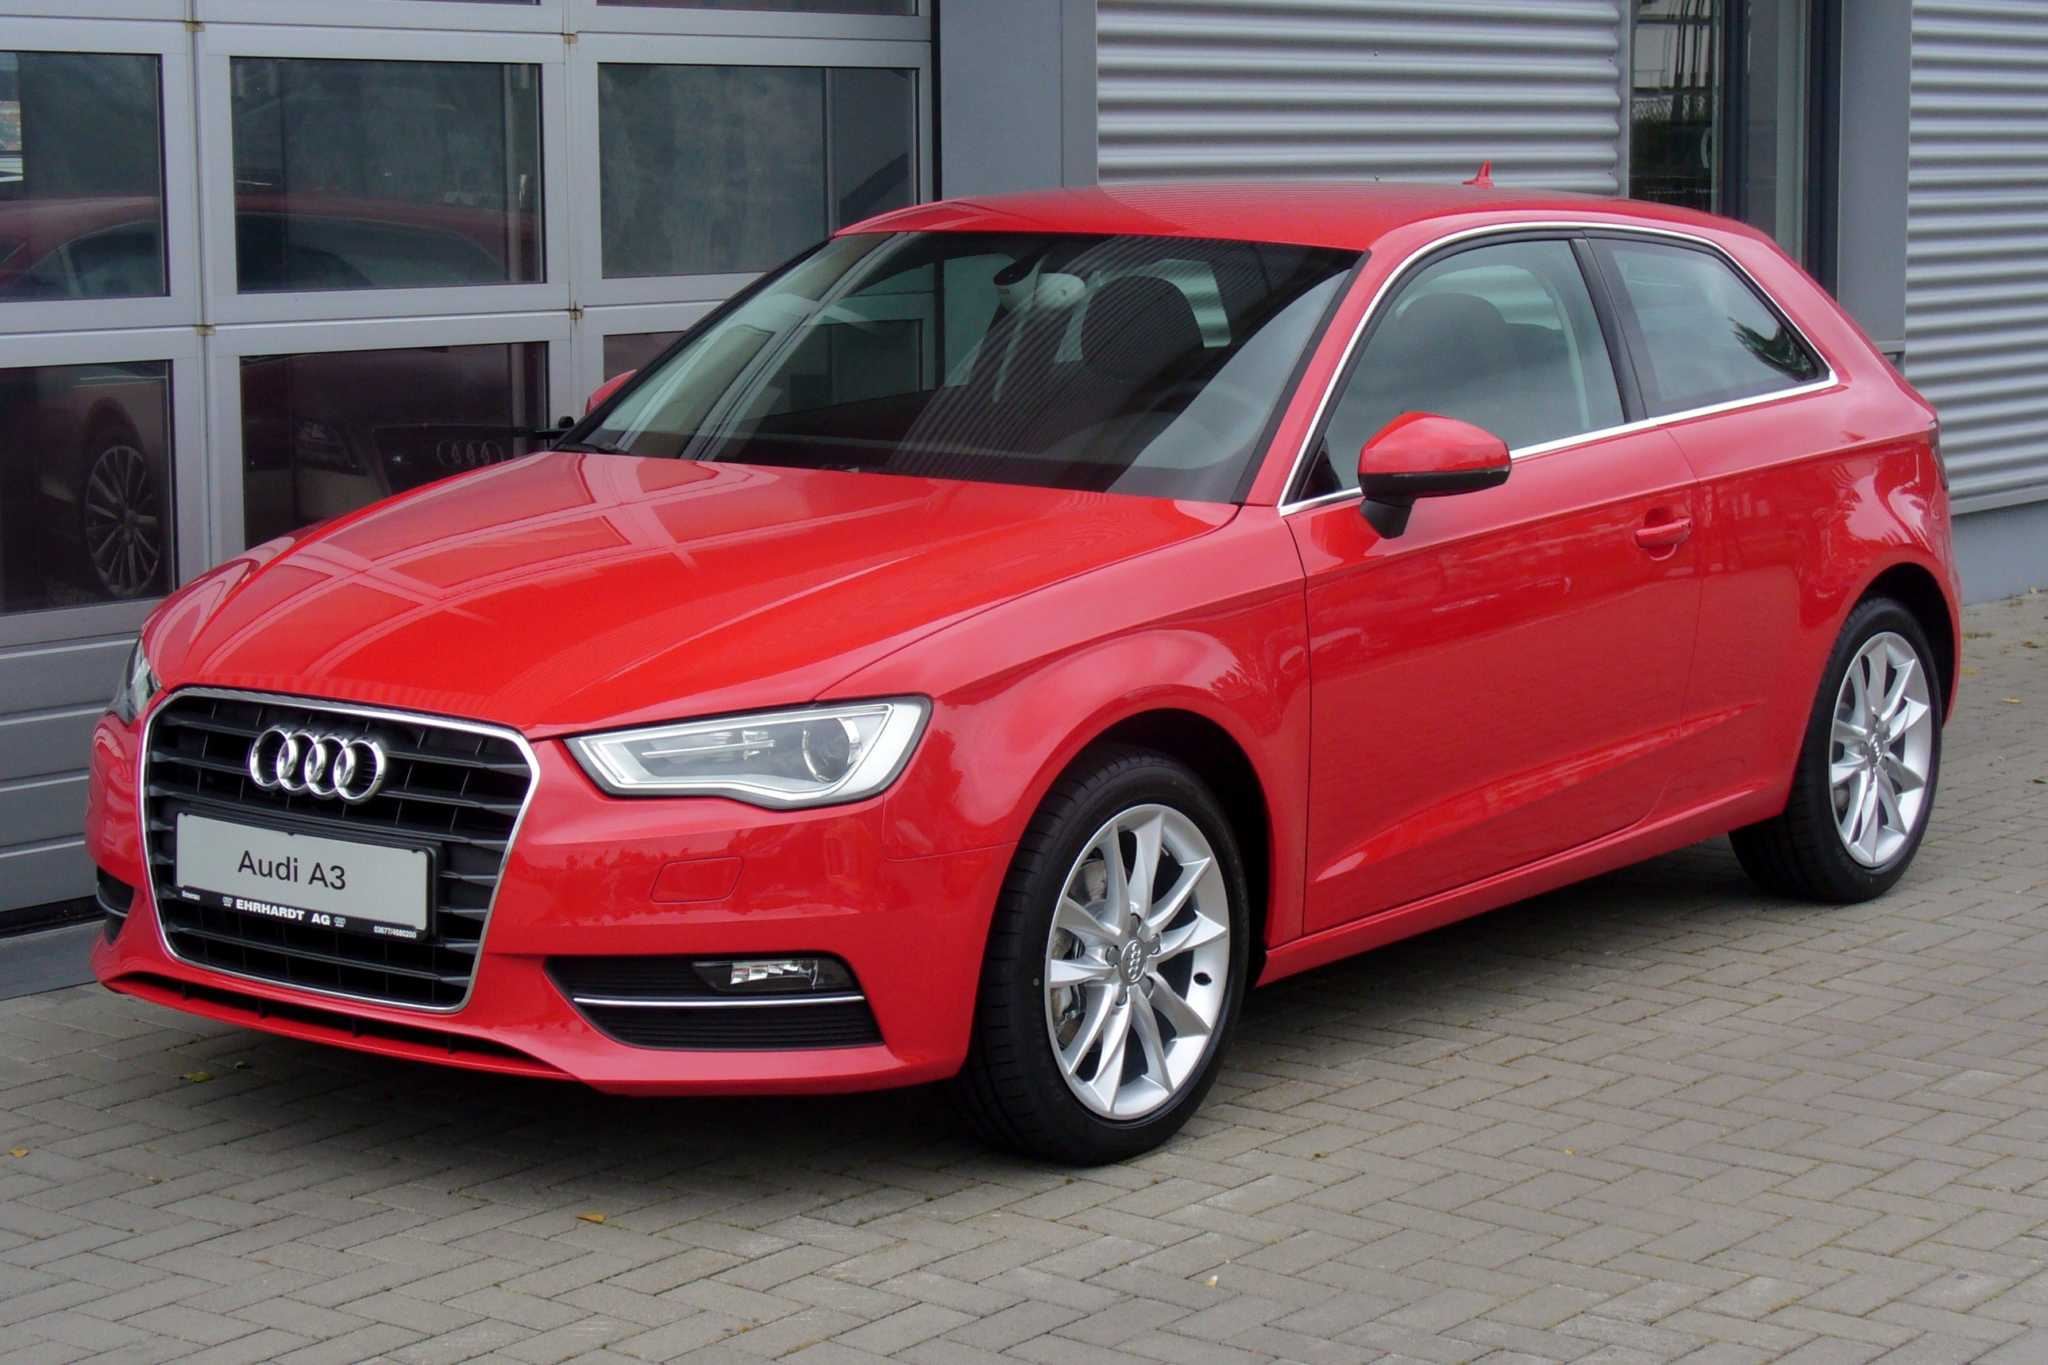 audi a3 specifications 2014 audi a3 price in india. Black Bedroom Furniture Sets. Home Design Ideas